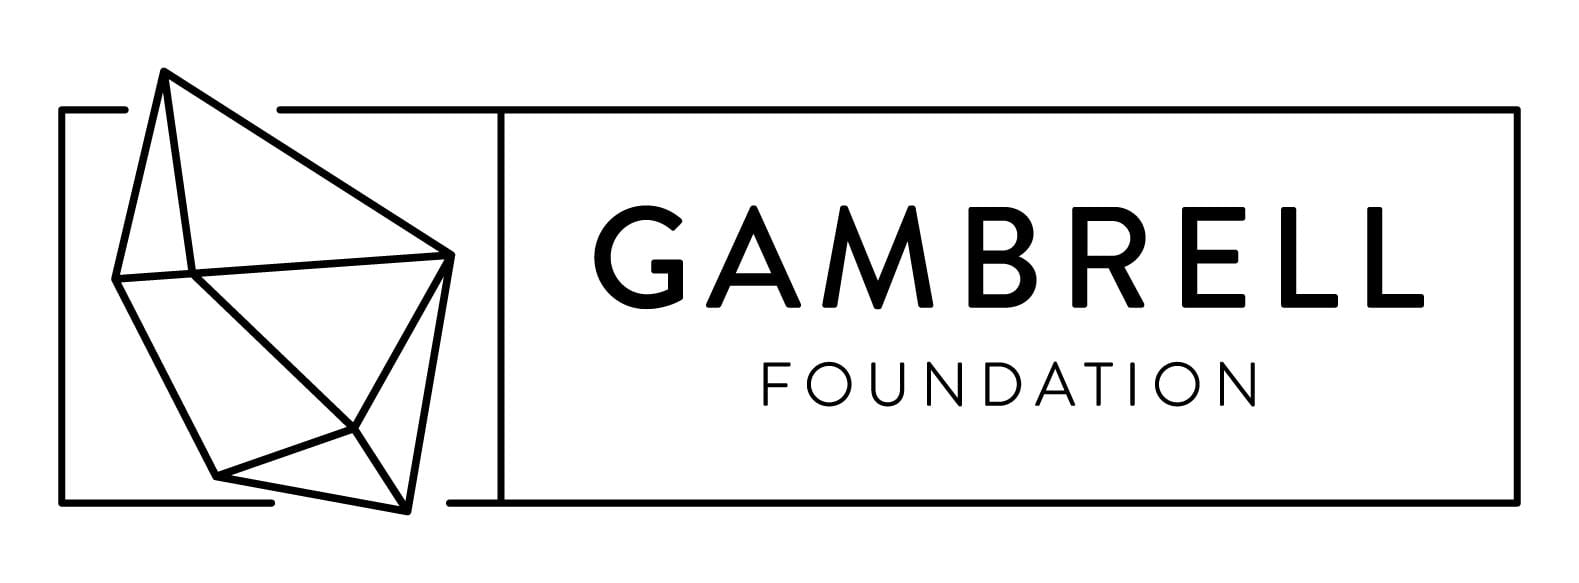 Gambrell Foundation